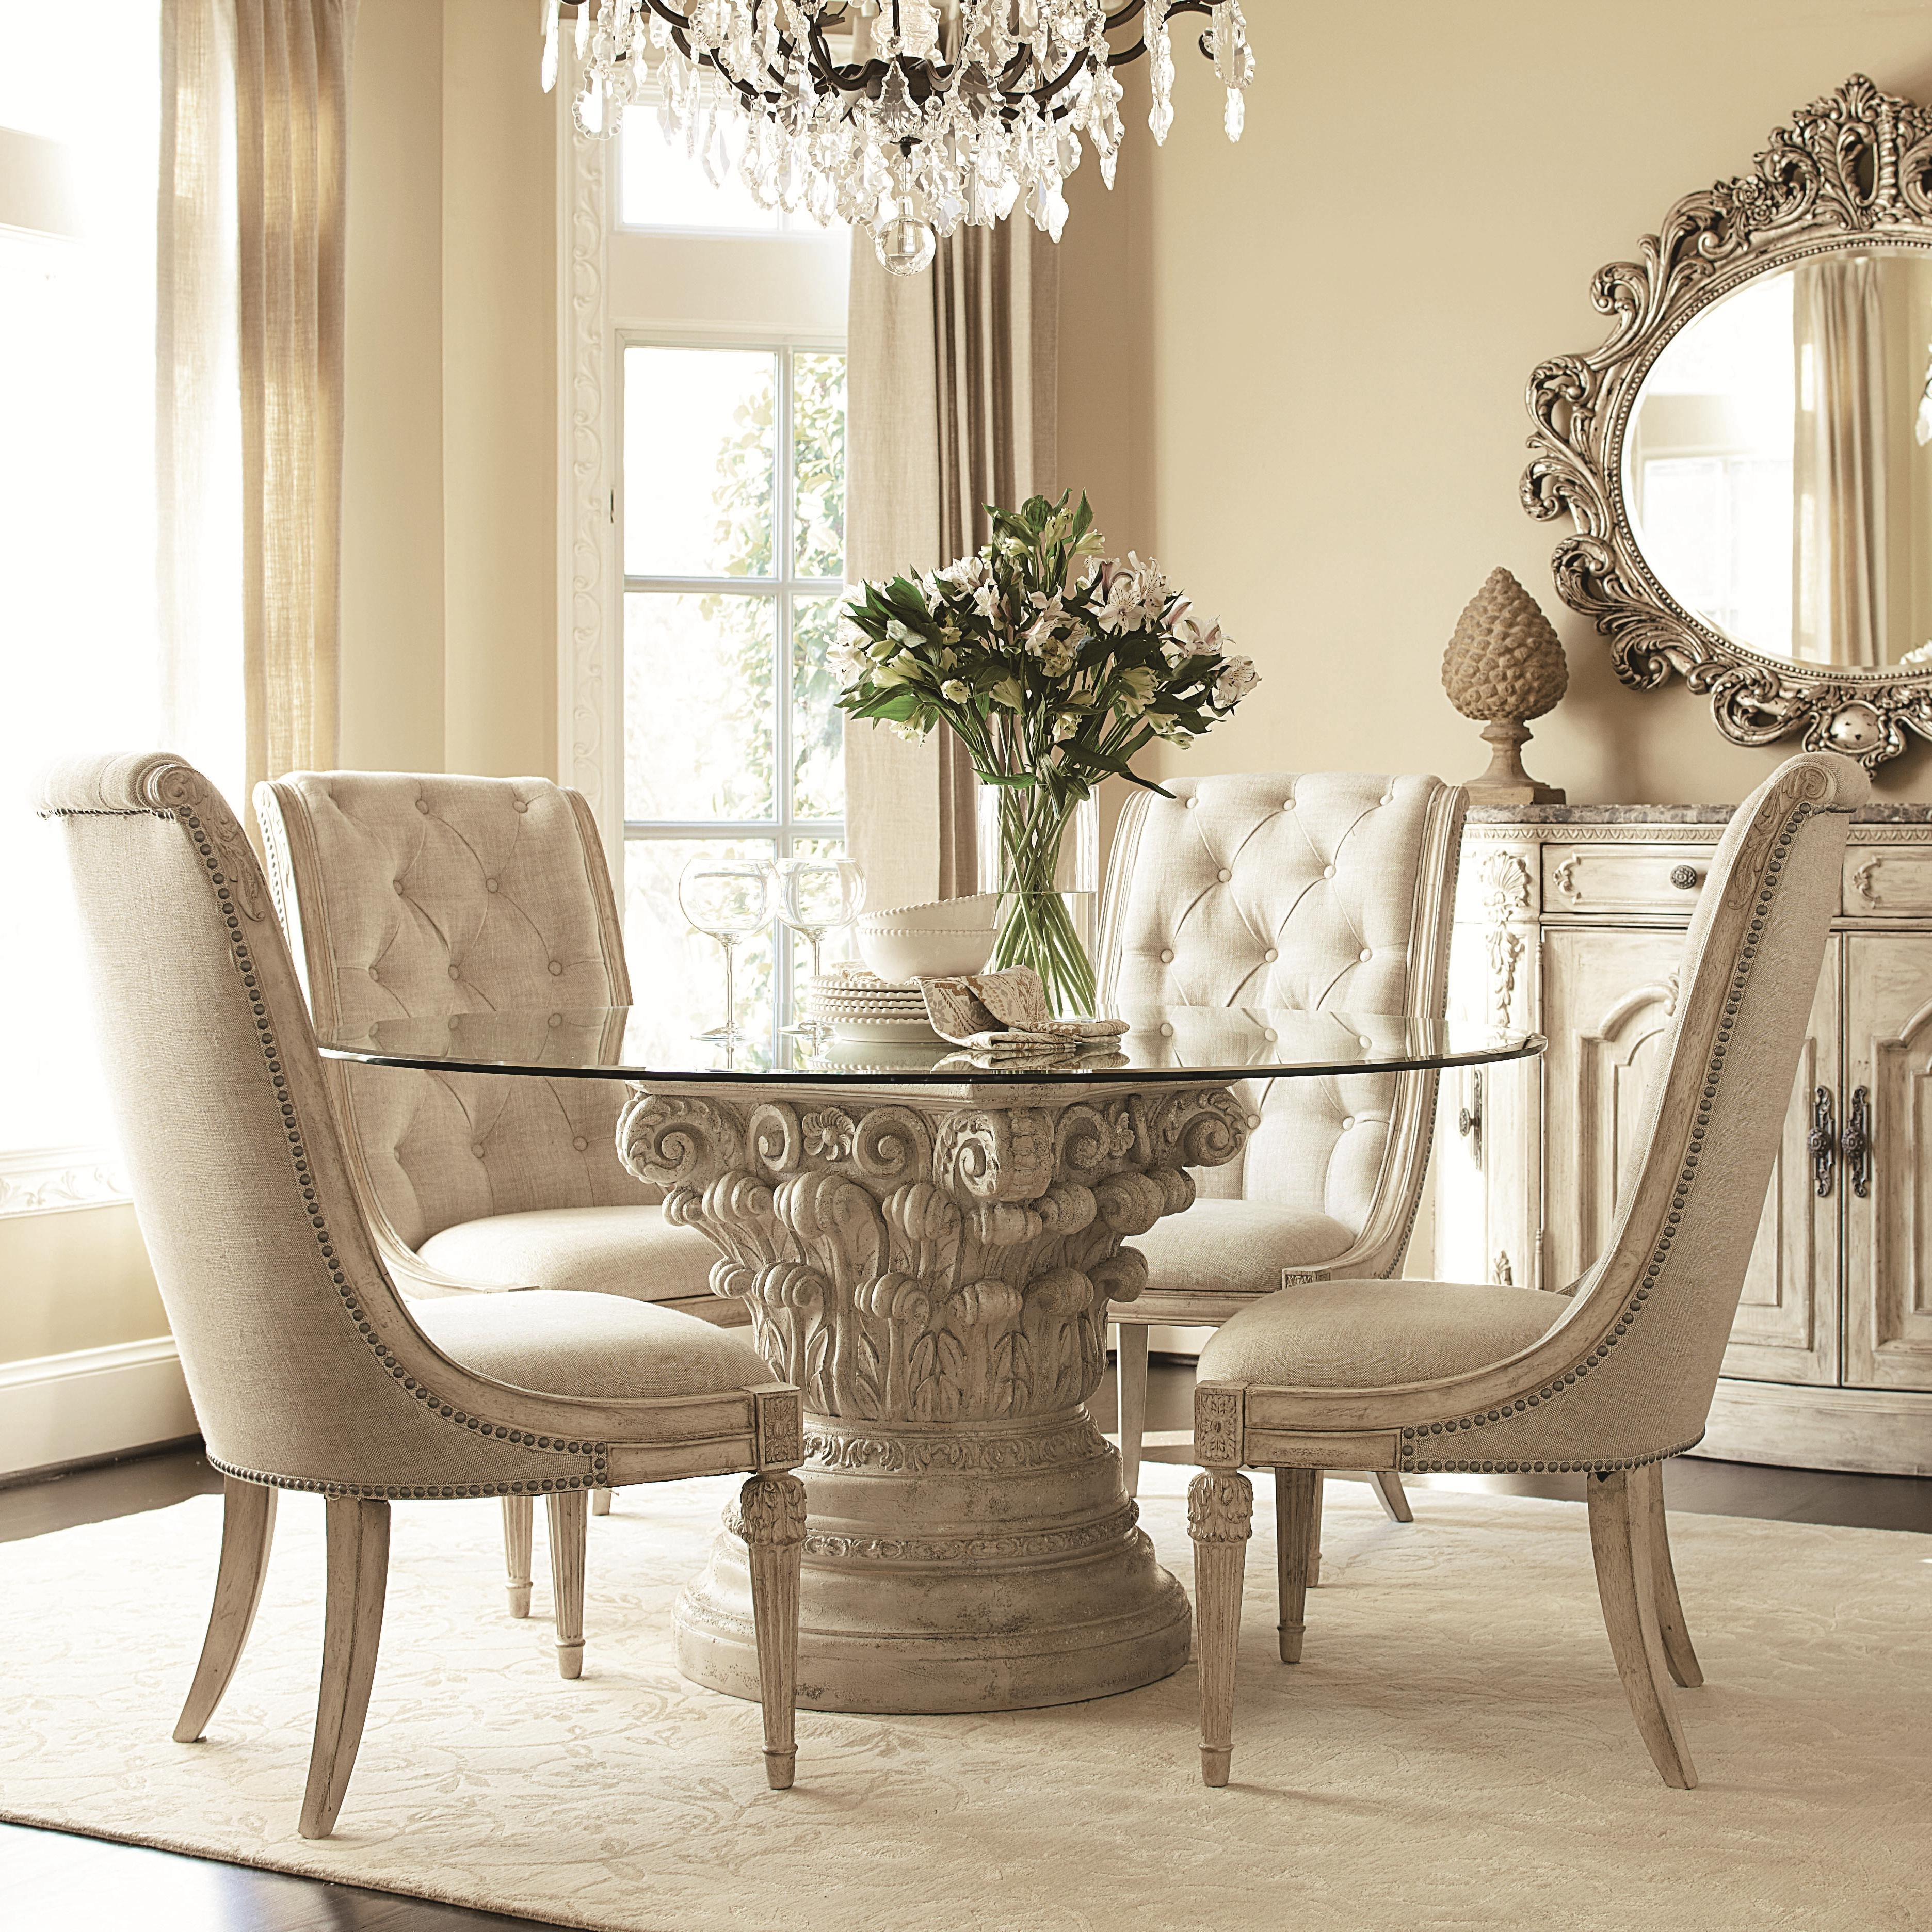 Most Current American Drew Jessica Mcclintock Home – The Boutique Collection 5 Pertaining To Caira Black 5 Piece Round Dining Sets With Diamond Back Side Chairs (Gallery 10 of 25)